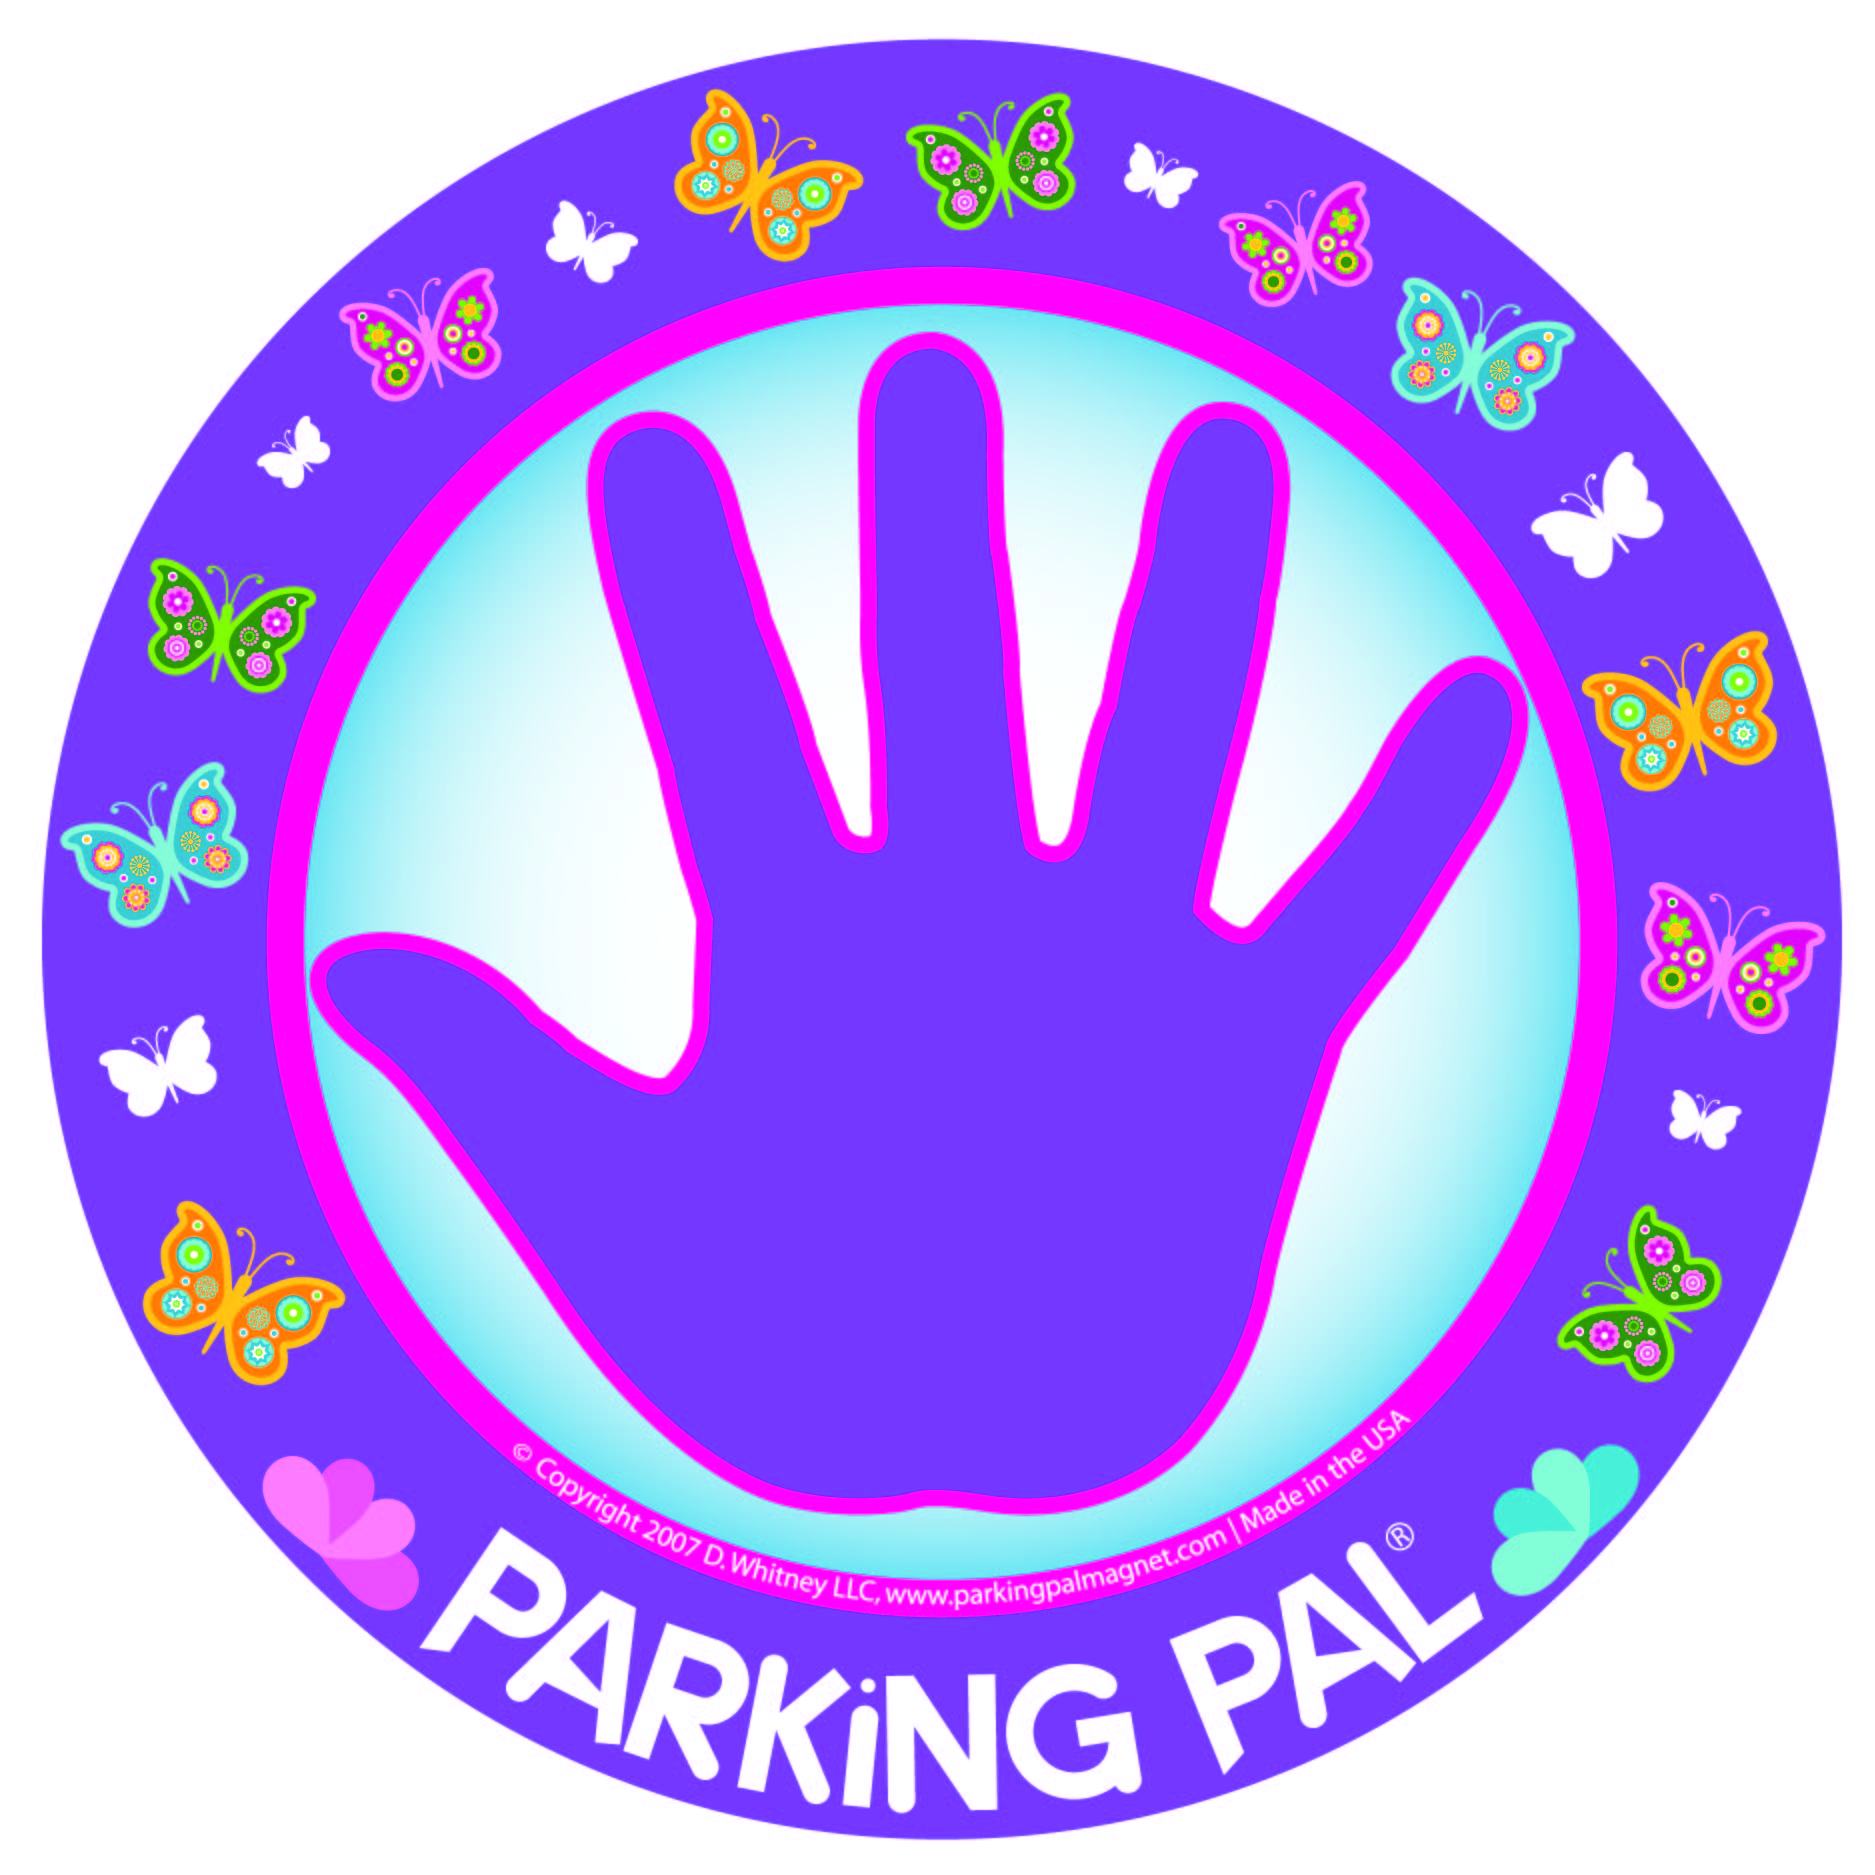 Parking Pal Magnet - ButterflyPal